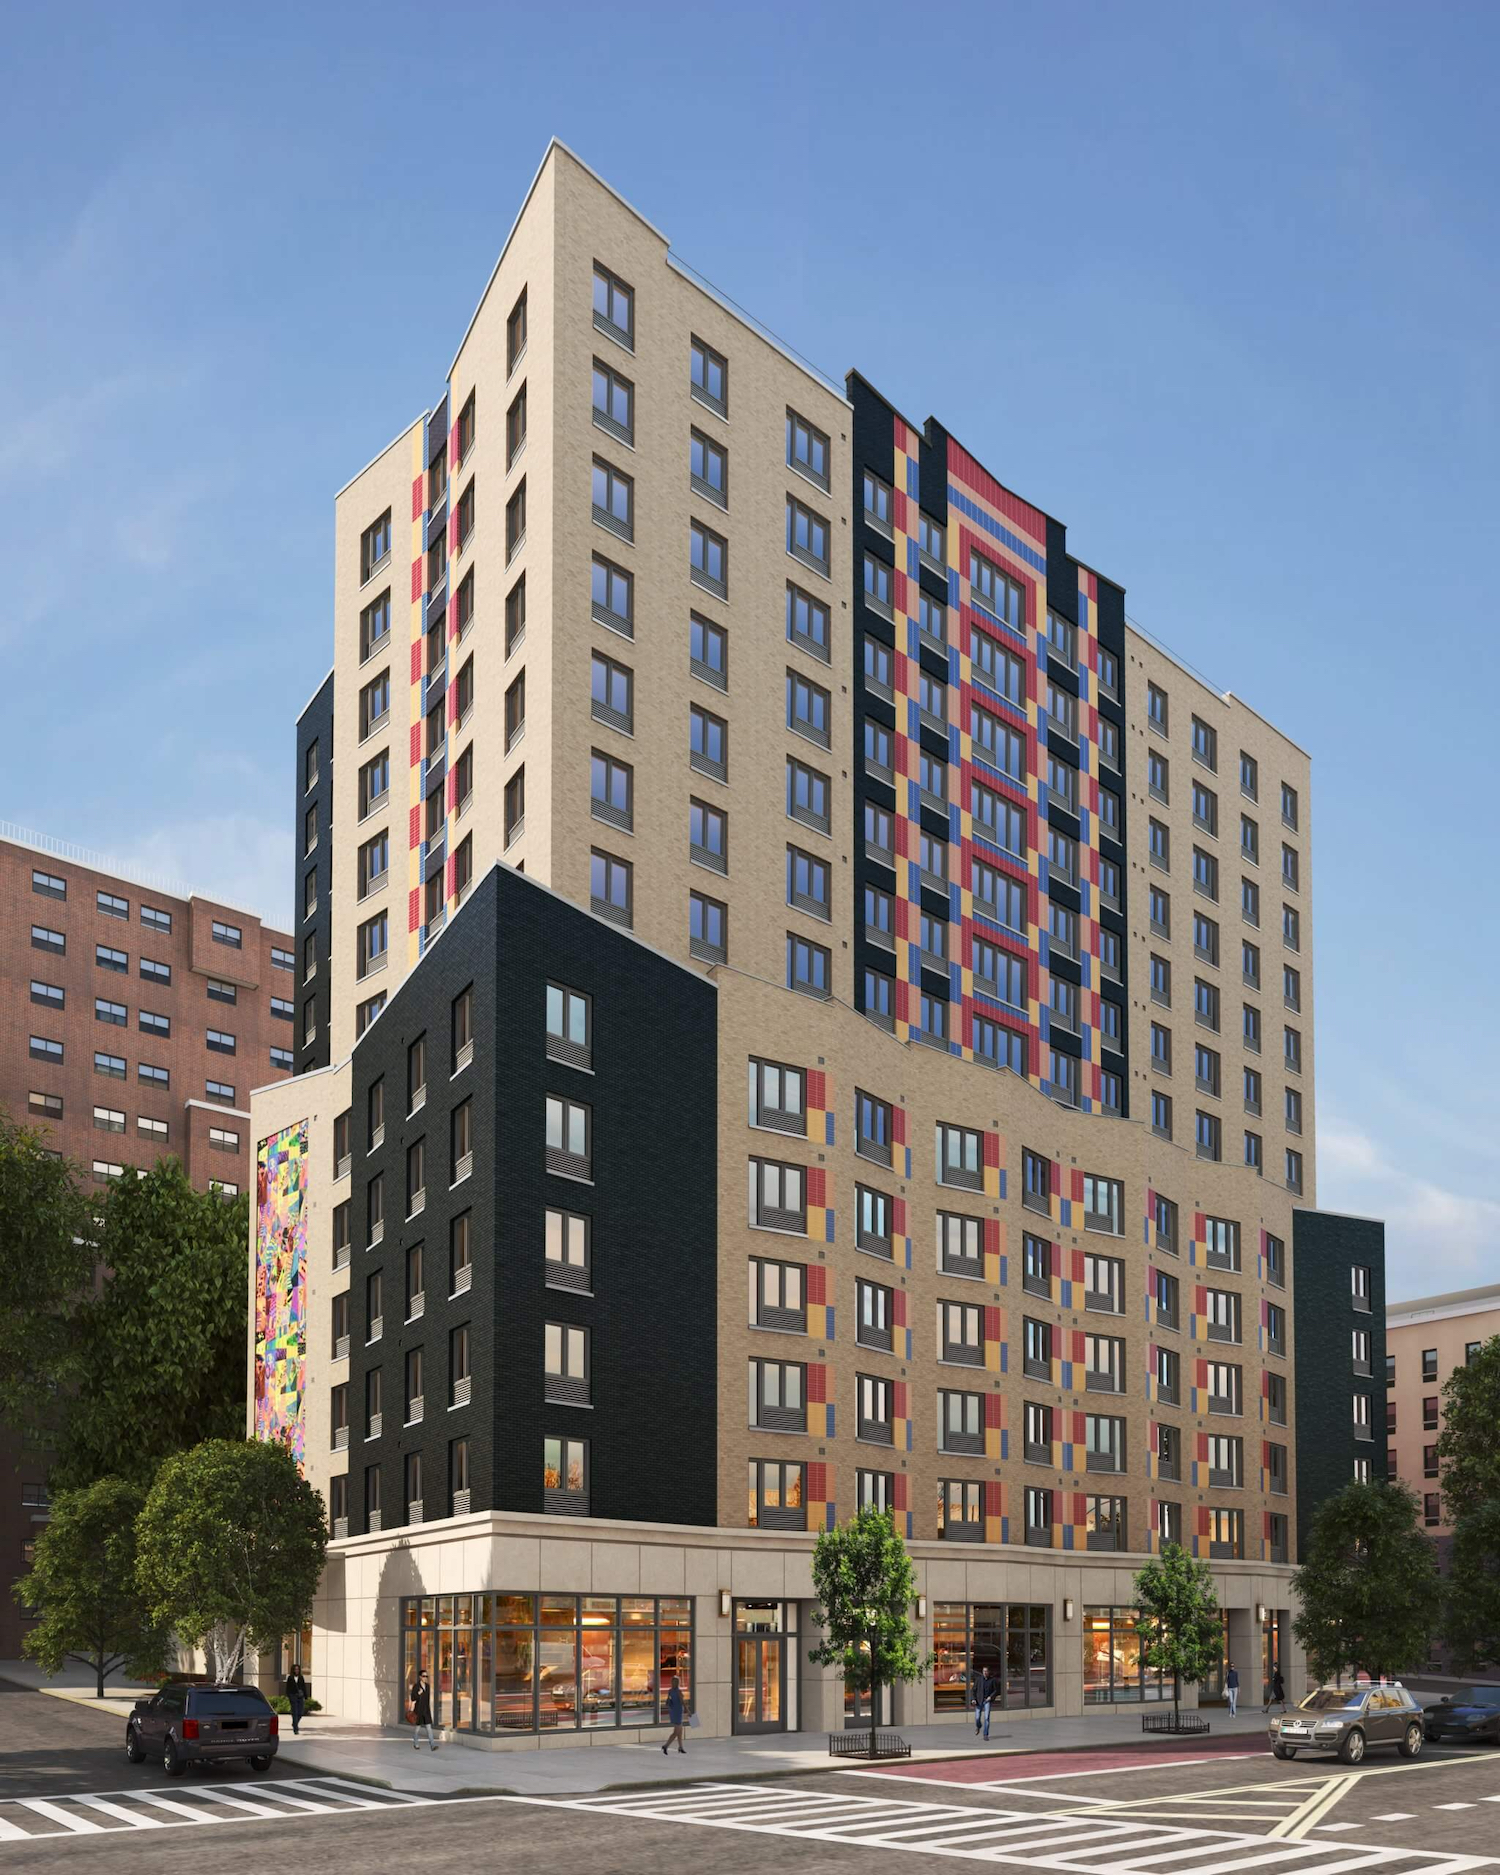 Rendering of Twin Parks Terrace. Courtesy of Danois Architects